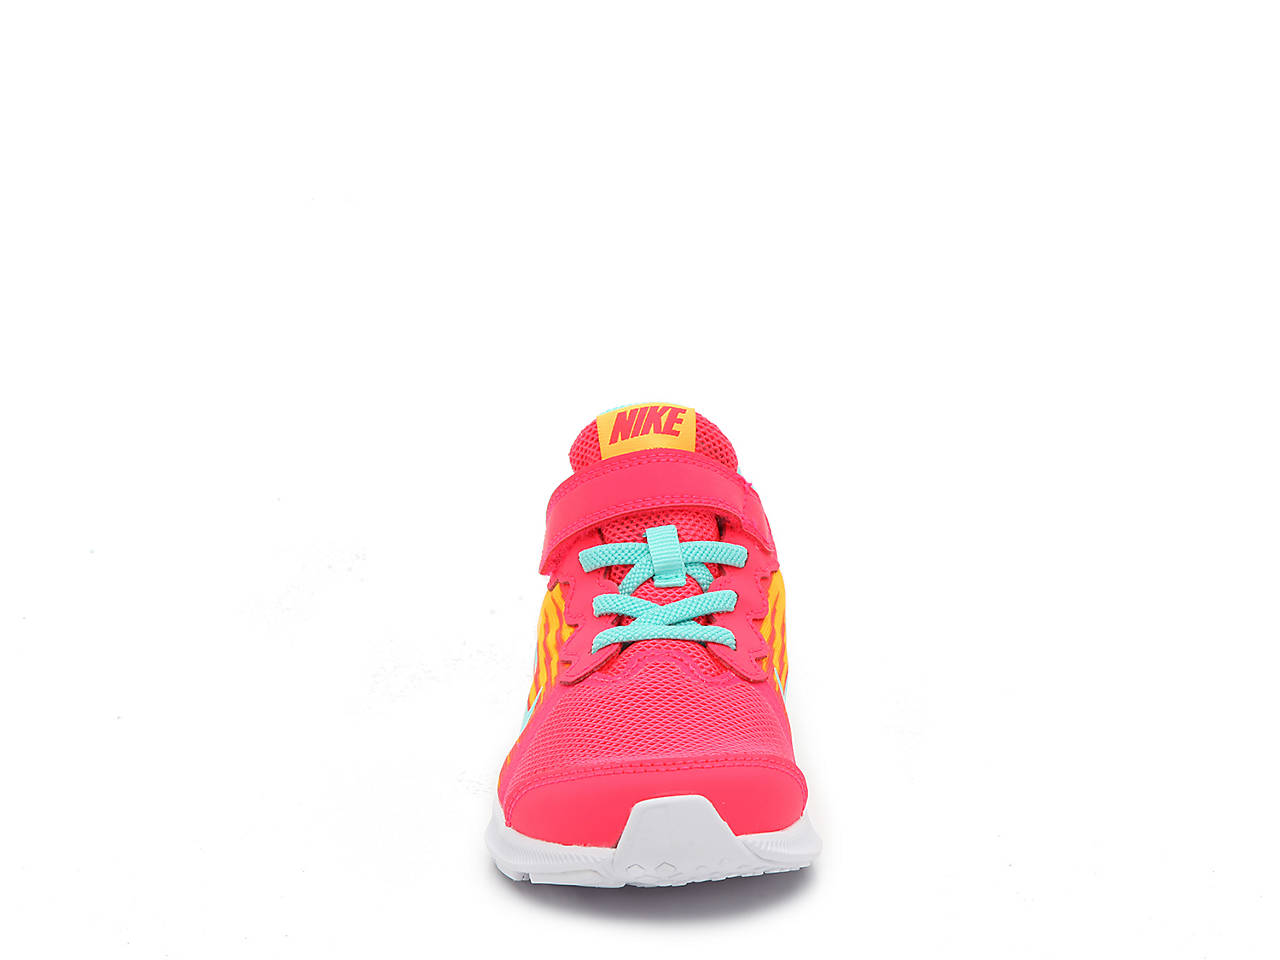 381ce5b784422 Nike Downshifter 8 Fade Toddler   Youth Sneaker Kids Shoes